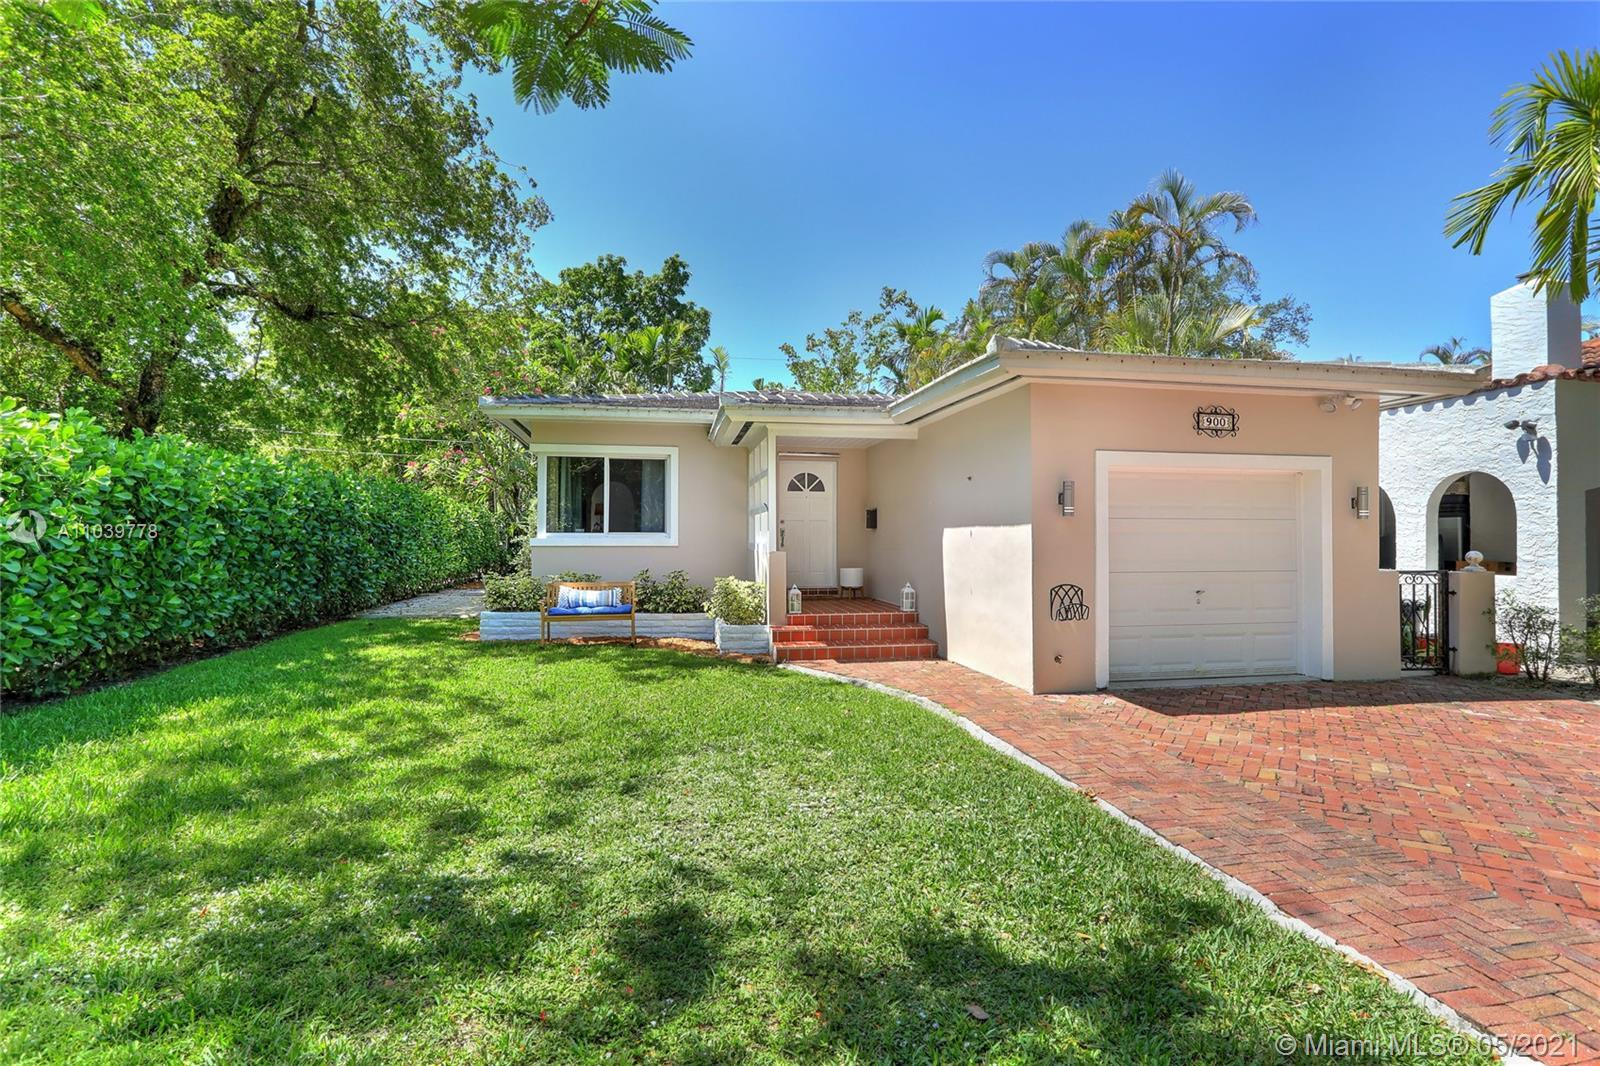 This charming 2 bedroom/2 bathroom home nestled on a beautiful & tranquil tree-lined street is locat